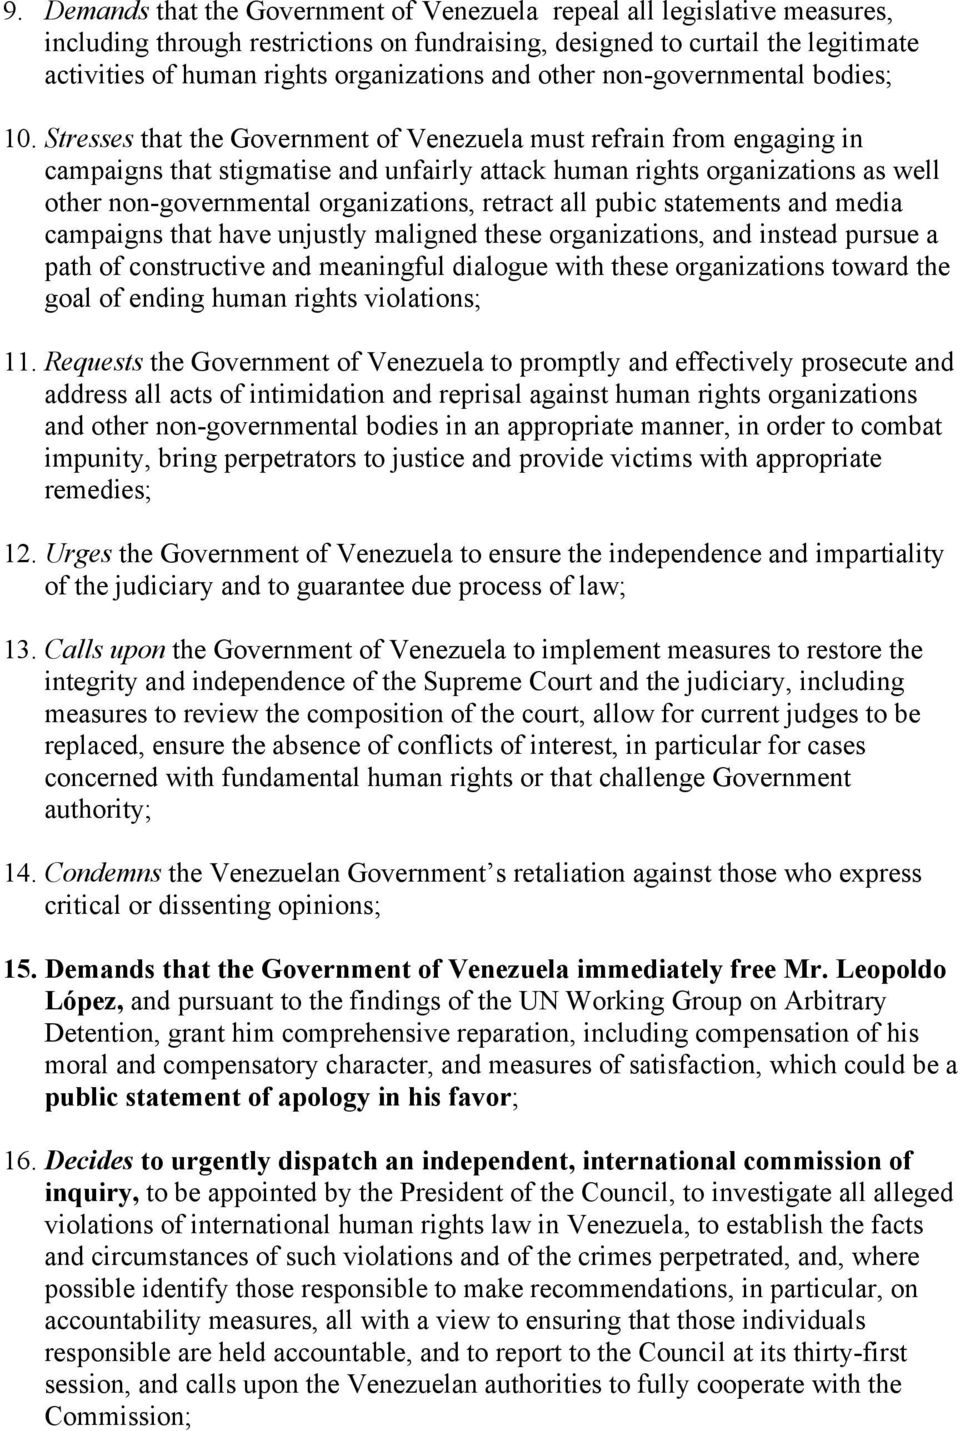 Stresses that the Government of Venezuela must refrain from engaging in campaigns that stigmatise and unfairly attack human rights organizations as well other non-governmental organizations, retract